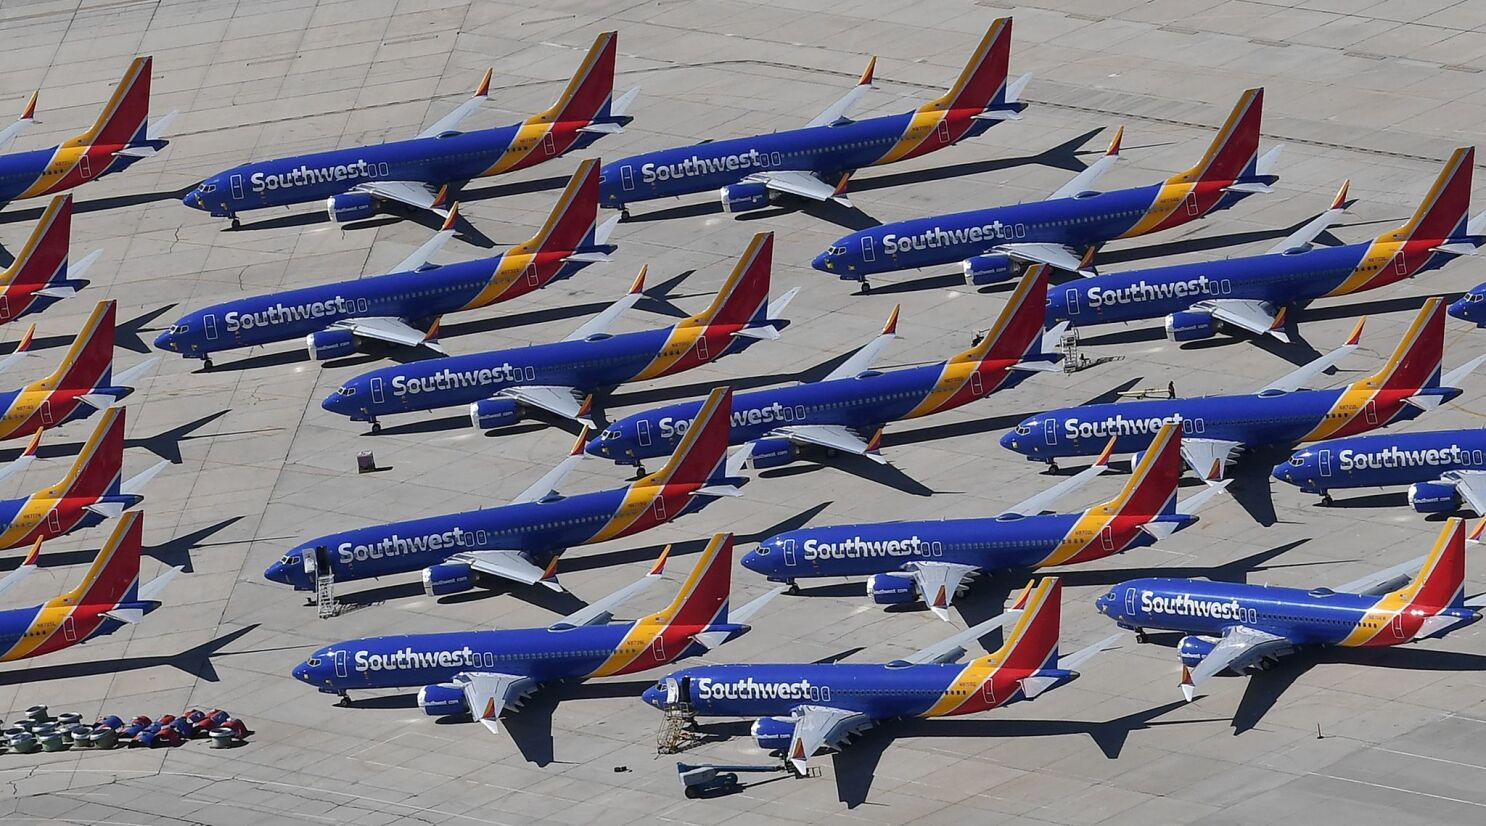 Boeing lands a showstopper deal to sell 200 new 737 Max planes - Los Angeles Times